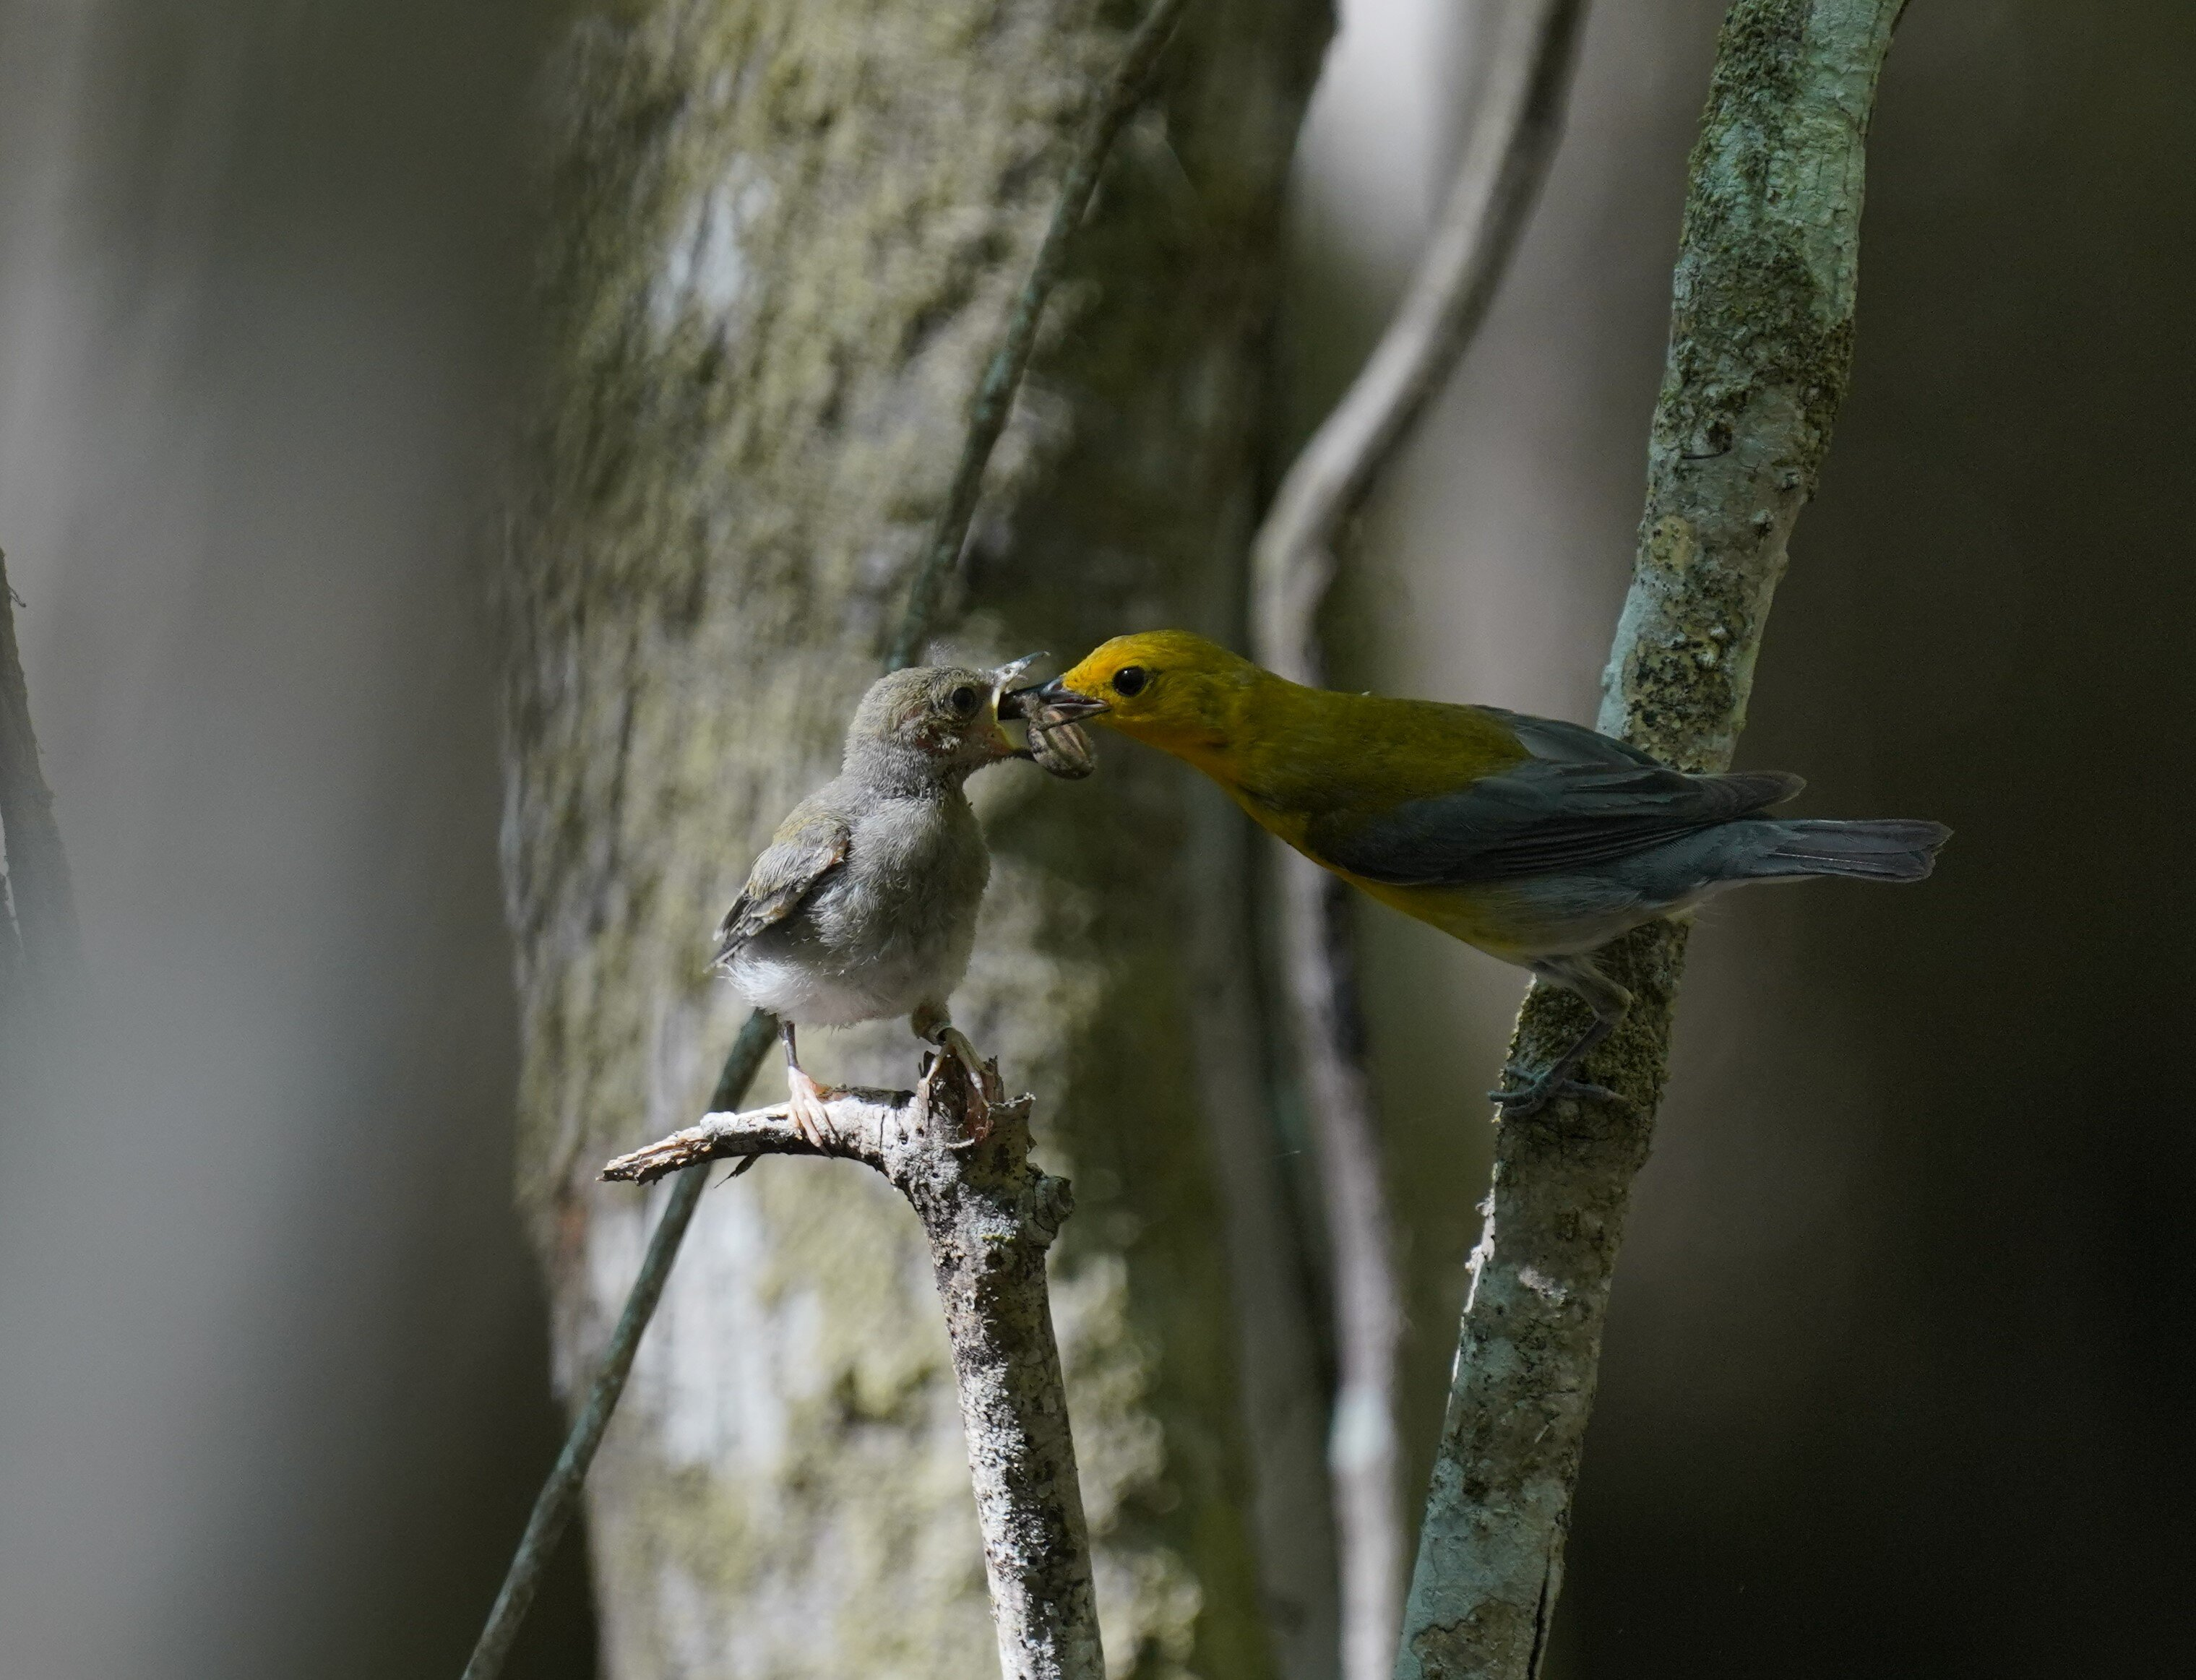 Prothonotary Warbler, yellow and blue plumage, feeds young fledgling from a snag in a gray backdrop swamp